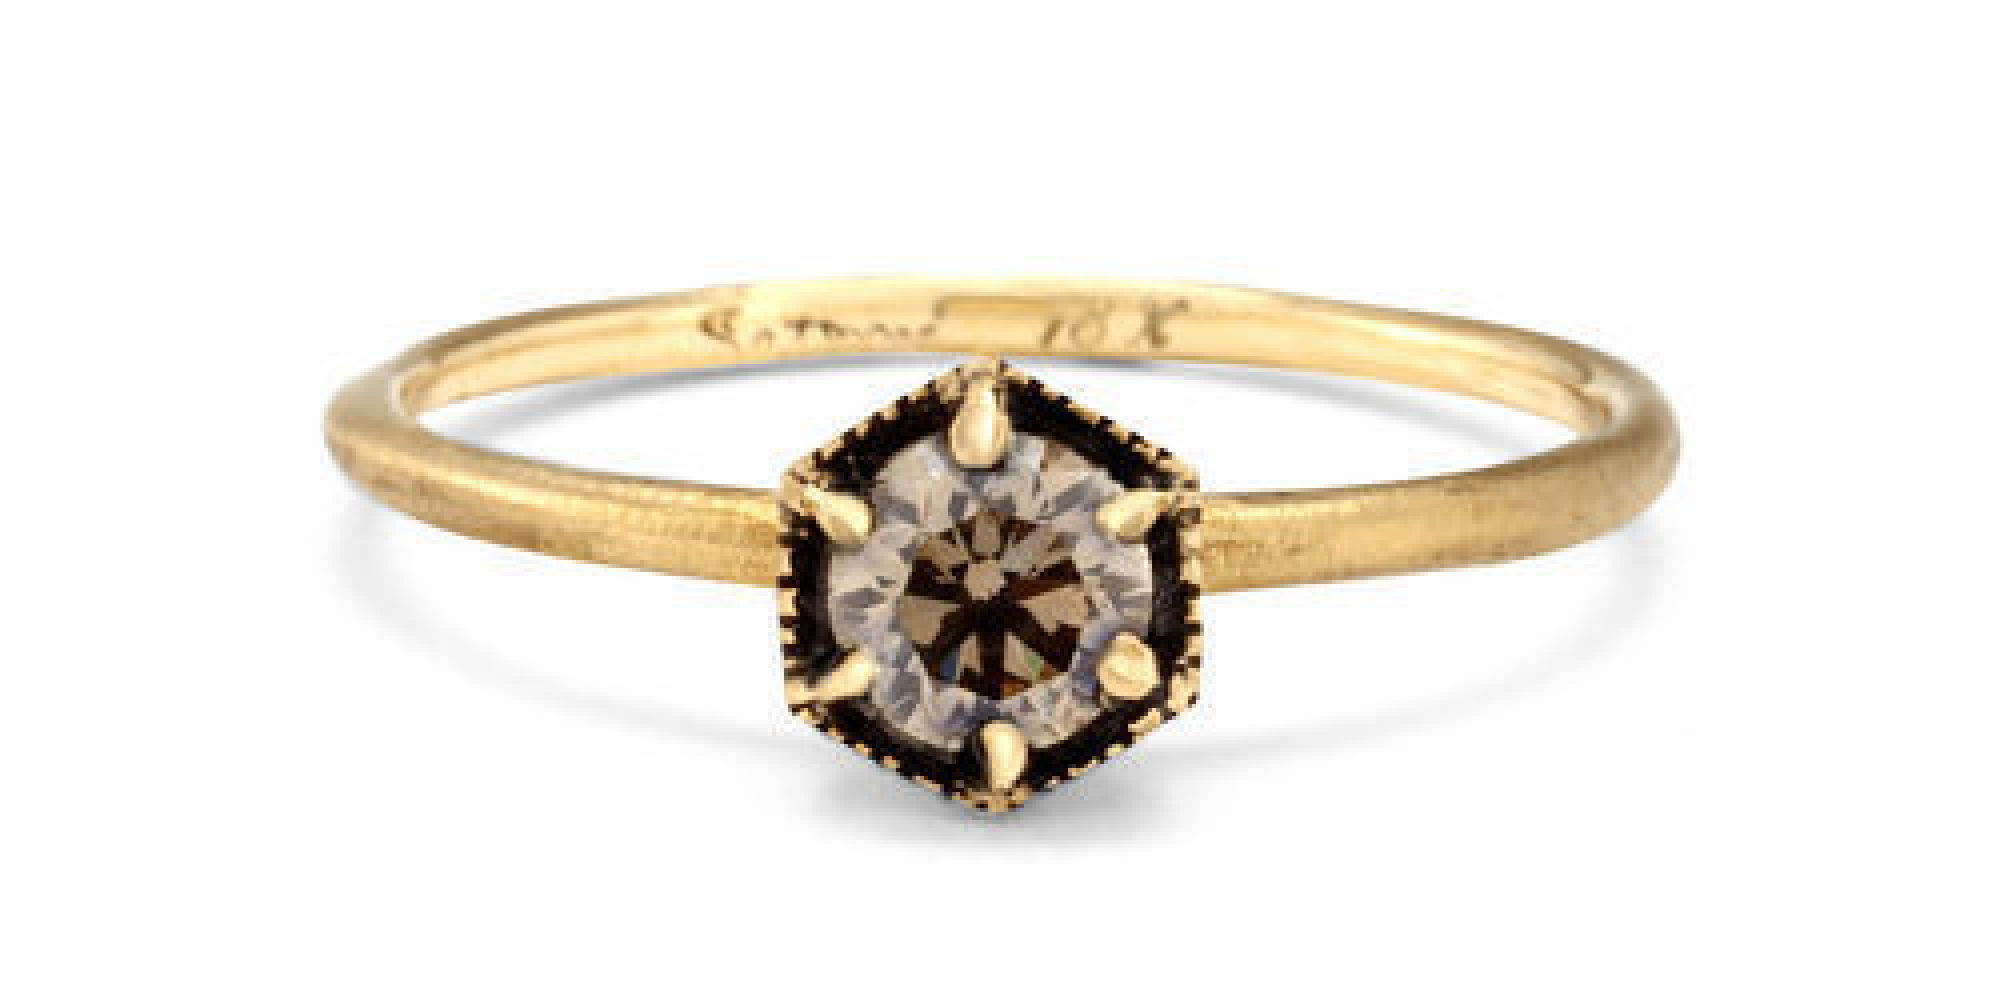 Thirteen Stunning Engagement Rings Under $3000